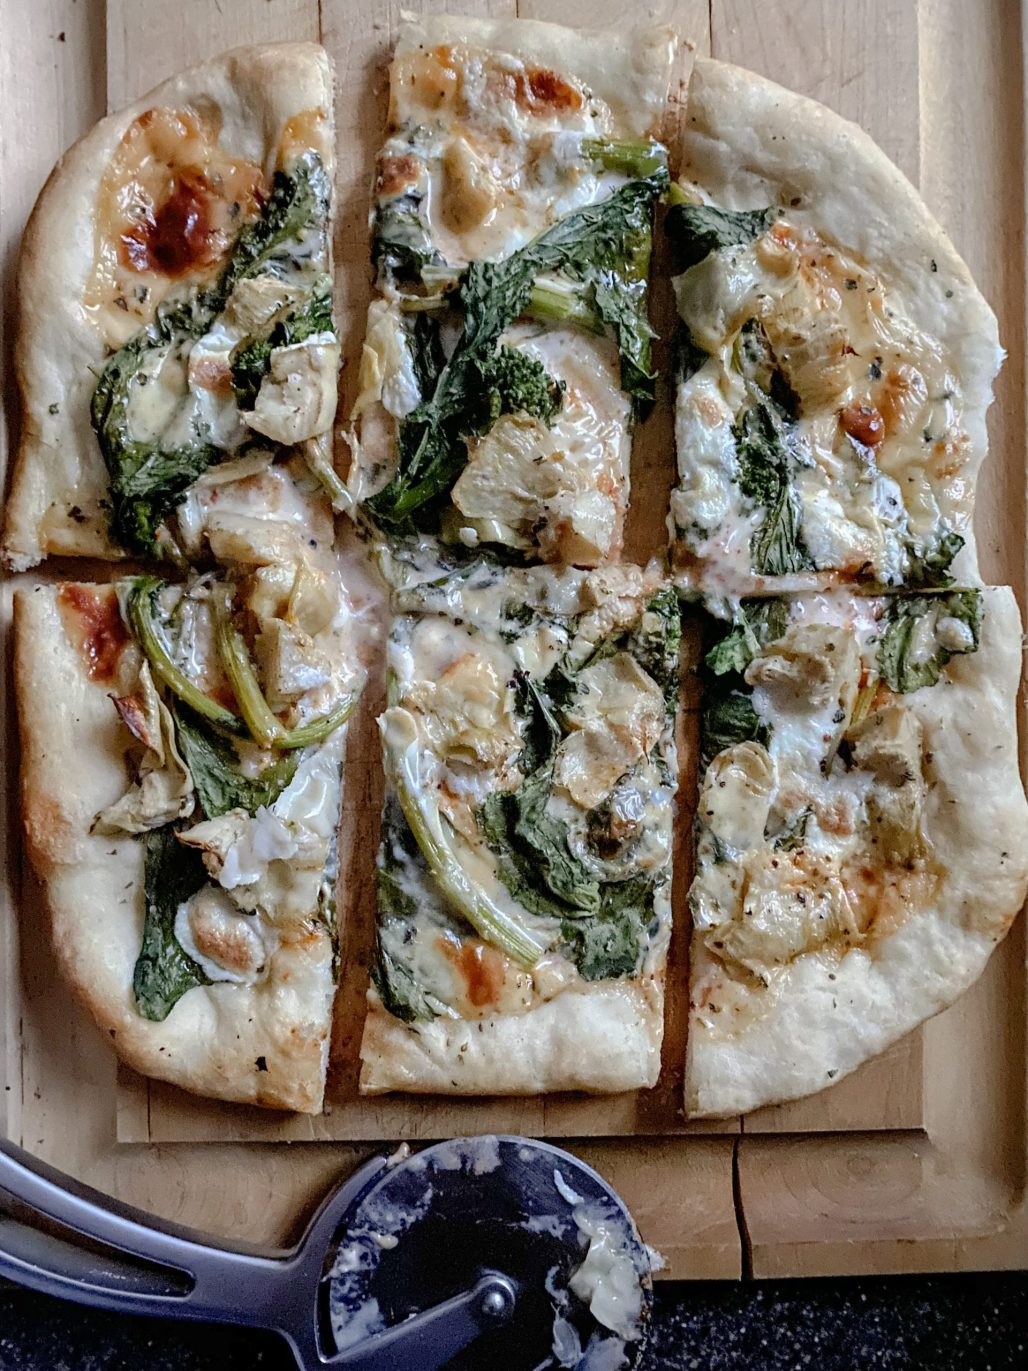 3 Homemade Pizza Recipes that are Better than Takeout :: Artichoke, Broccoli Rabe + Smoked Gouda || Dreamery Events